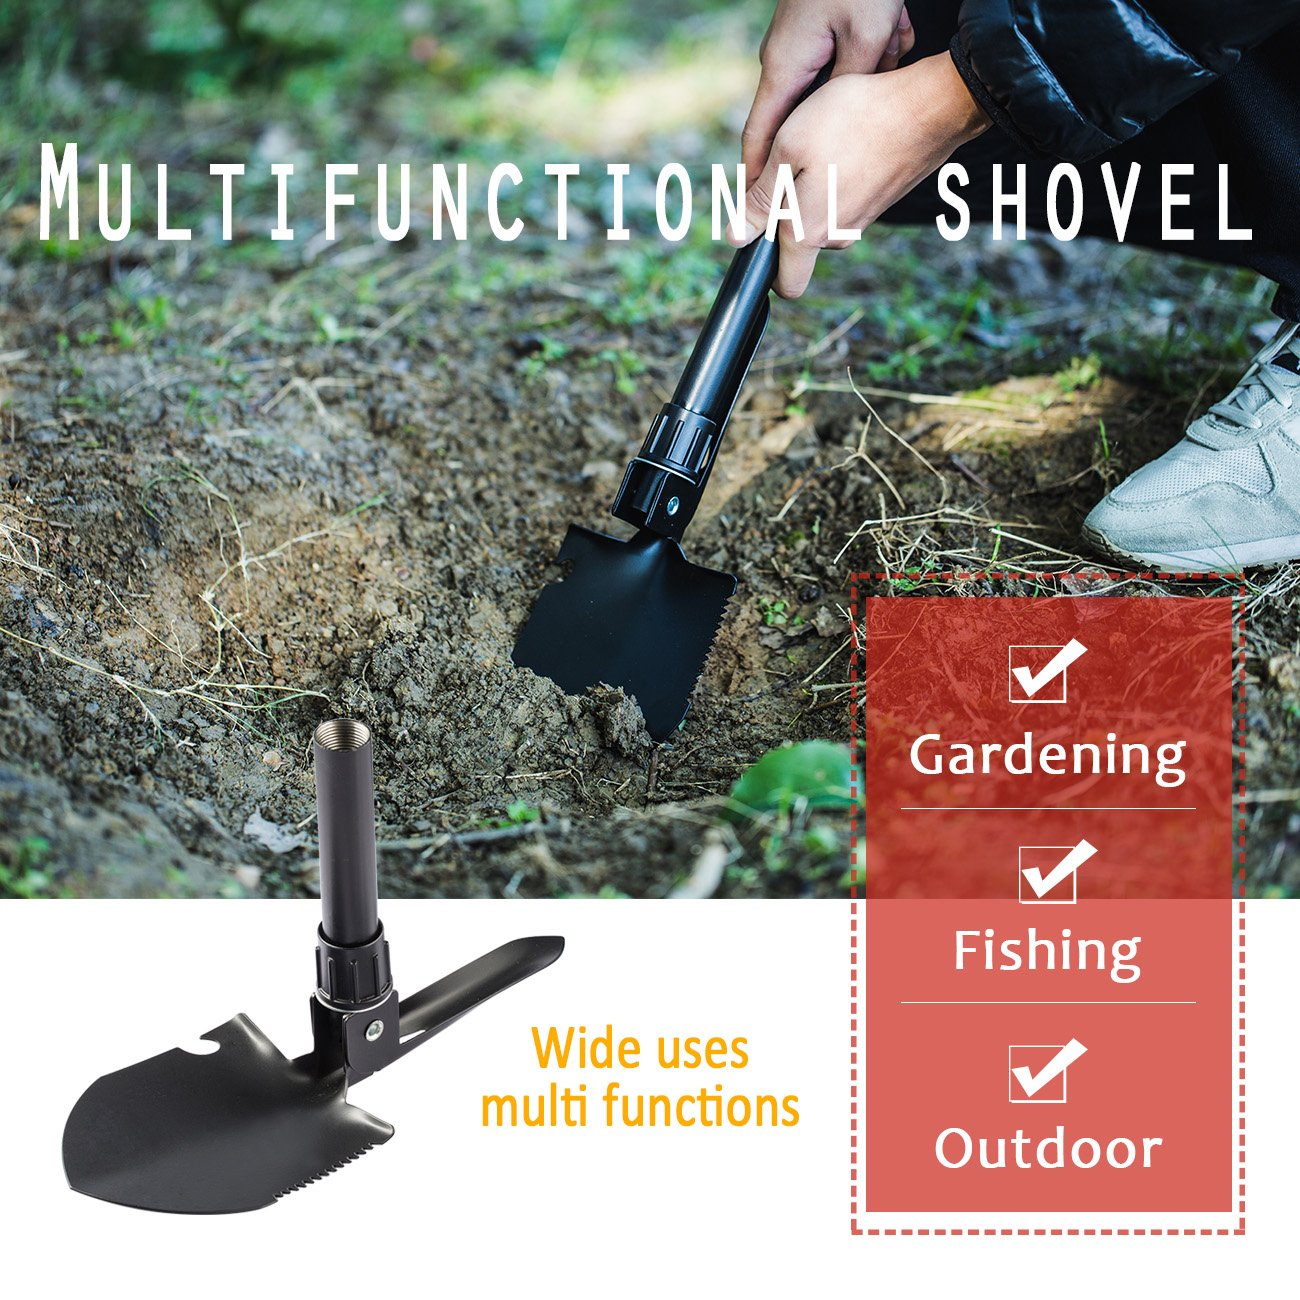 Overmont Folding Shovel - Outdoor Tool 16.3 Inches with Pick Steel Spade for Camping Hiking Backpacking Gardening Entrenching Fishing by Overmont (Image #6)